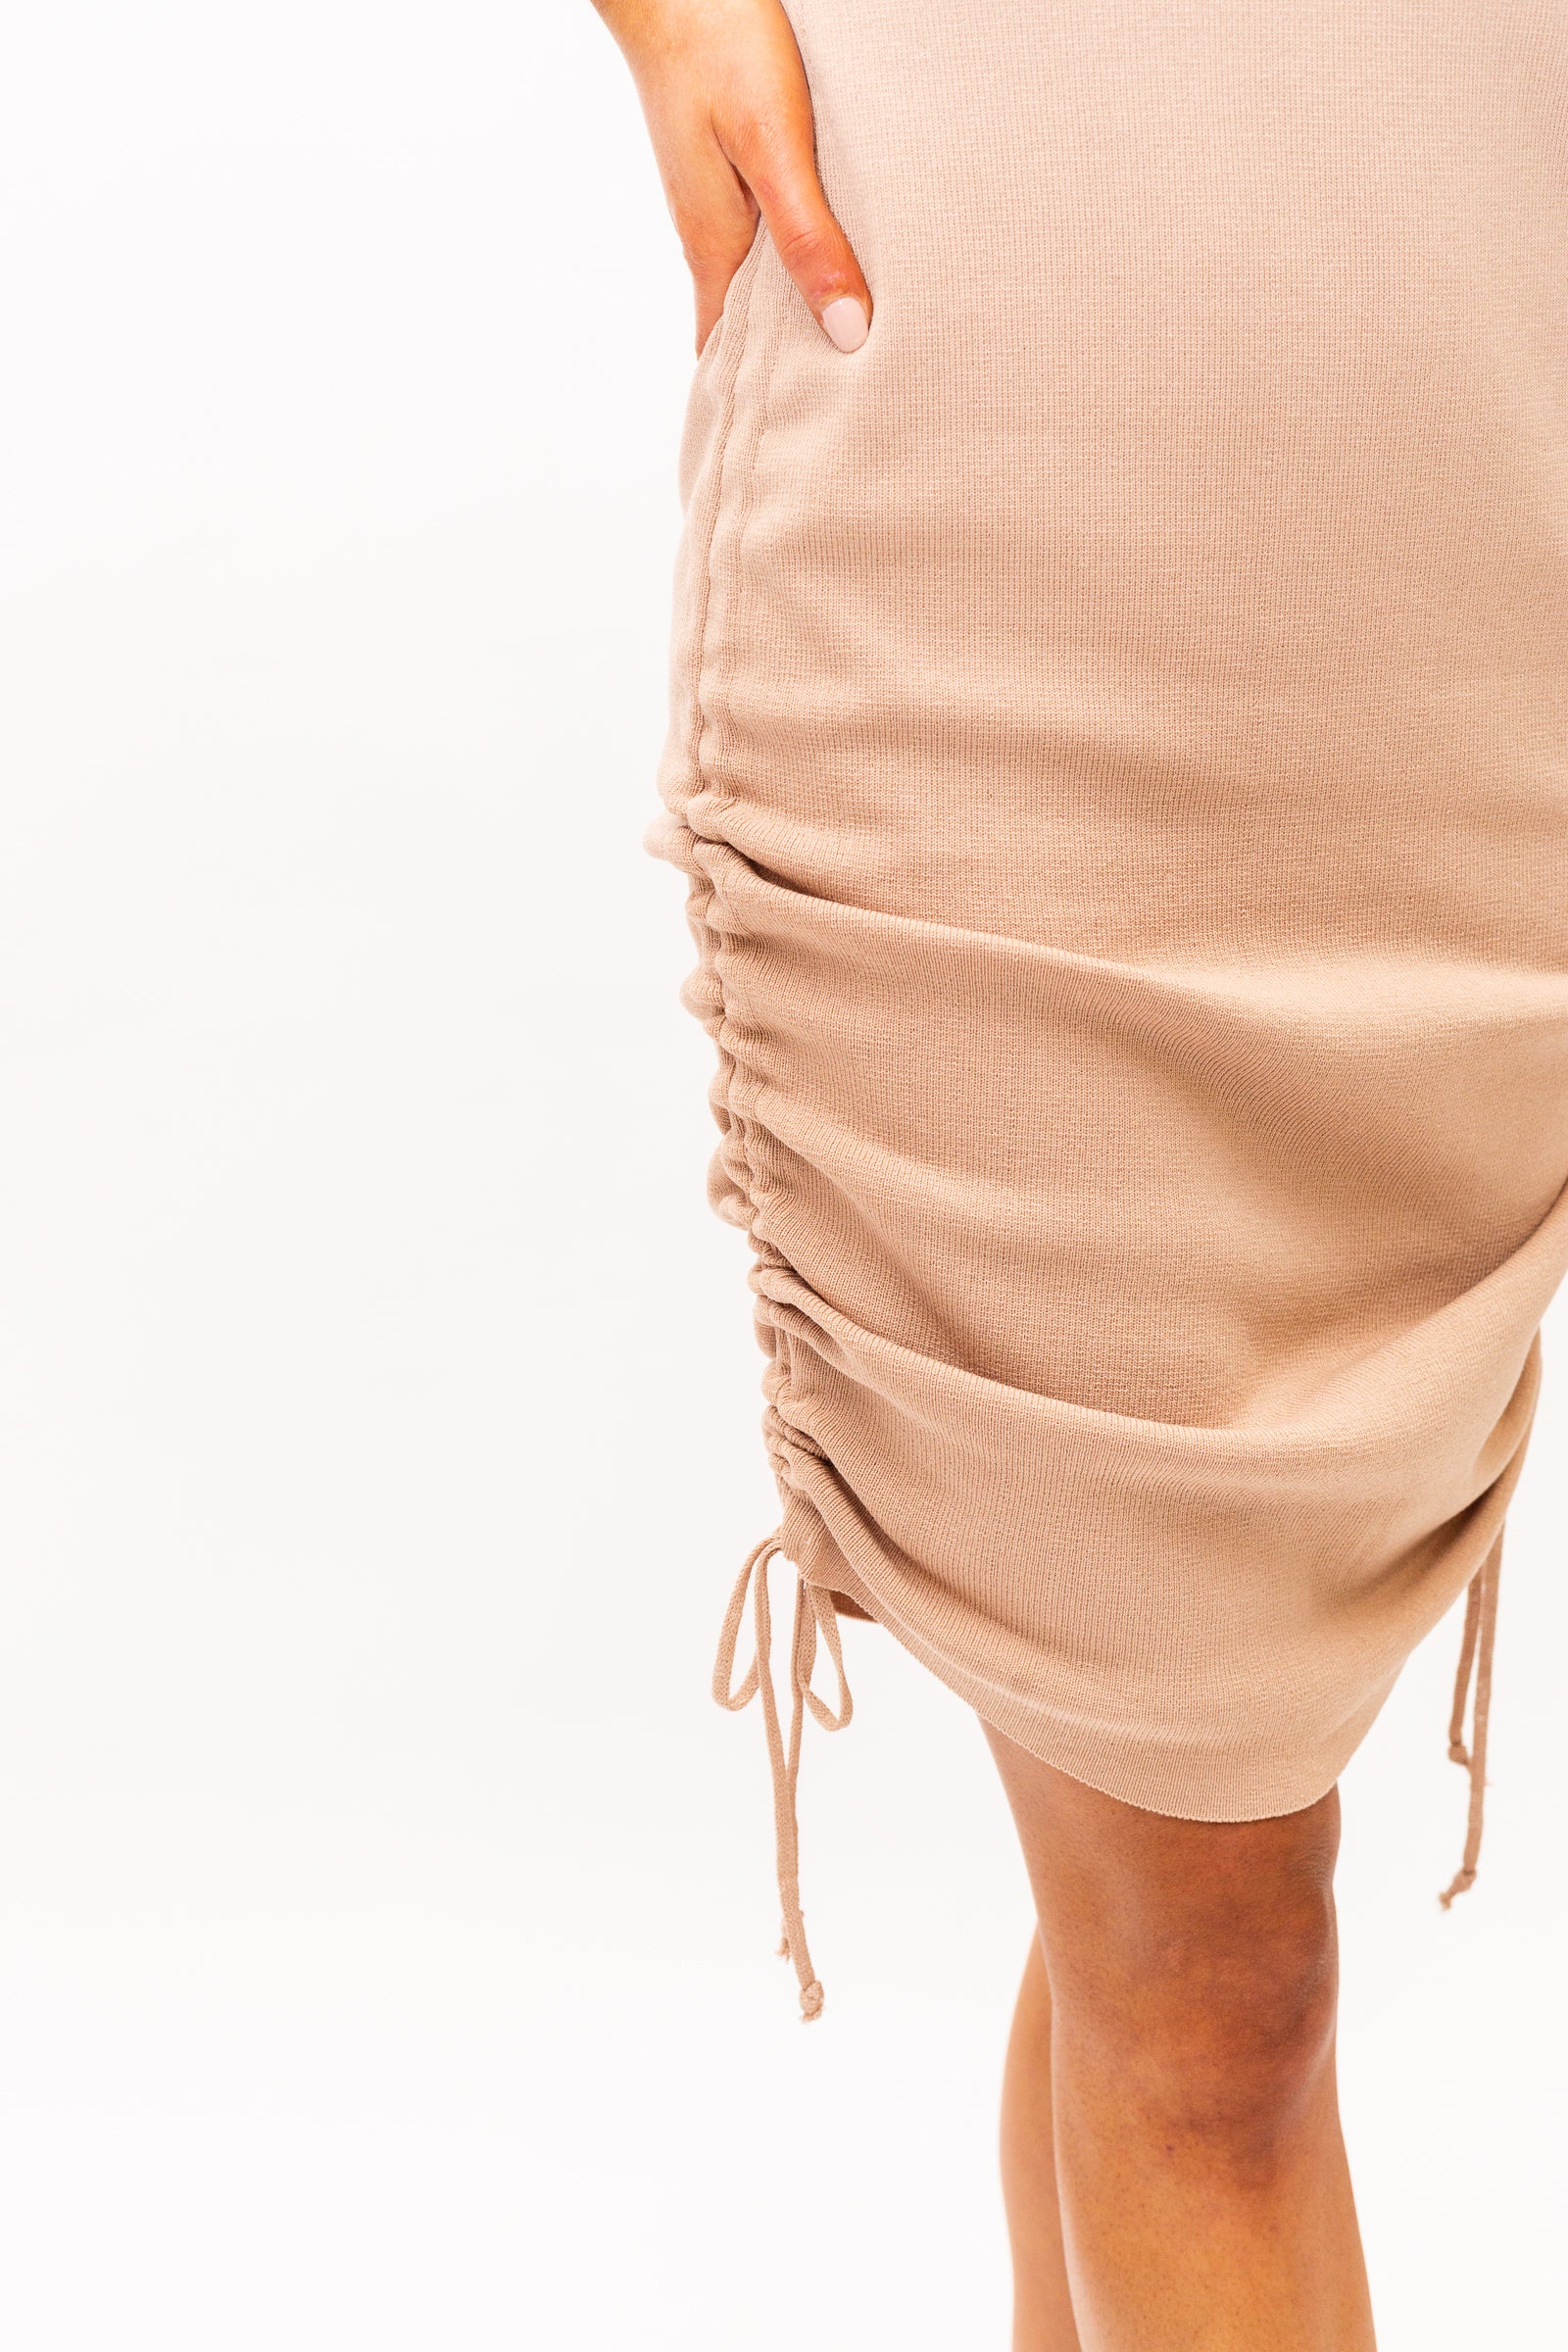 Medium straps attach to a u-neckline on a fitted ribbed bodycon bodice that goes down into a midi skirt with drawstrings on the sides to customize the ruching details on the skirt.